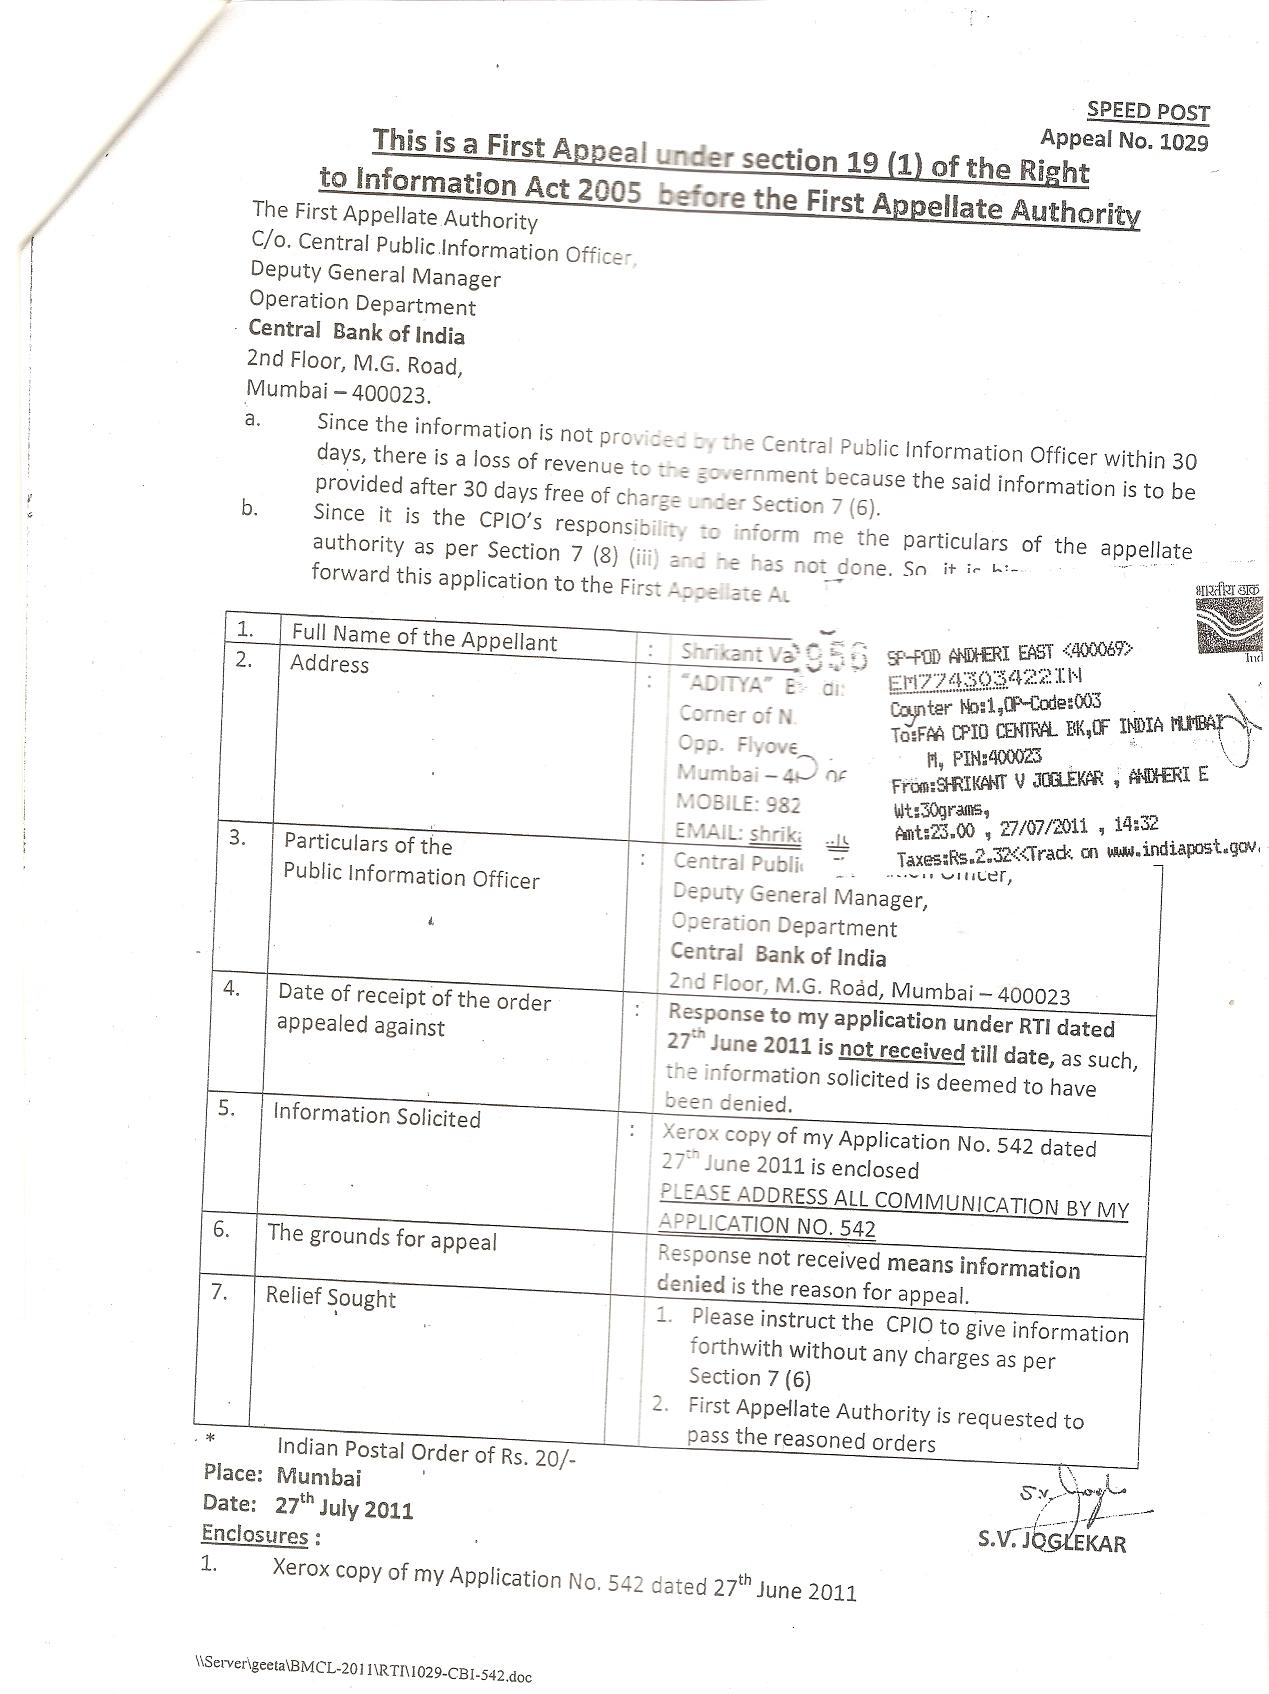 Valuers world view topic central bank of india fee posted wed aug 24 2011 231 pm post subject central bank of india fee altavistaventures Gallery